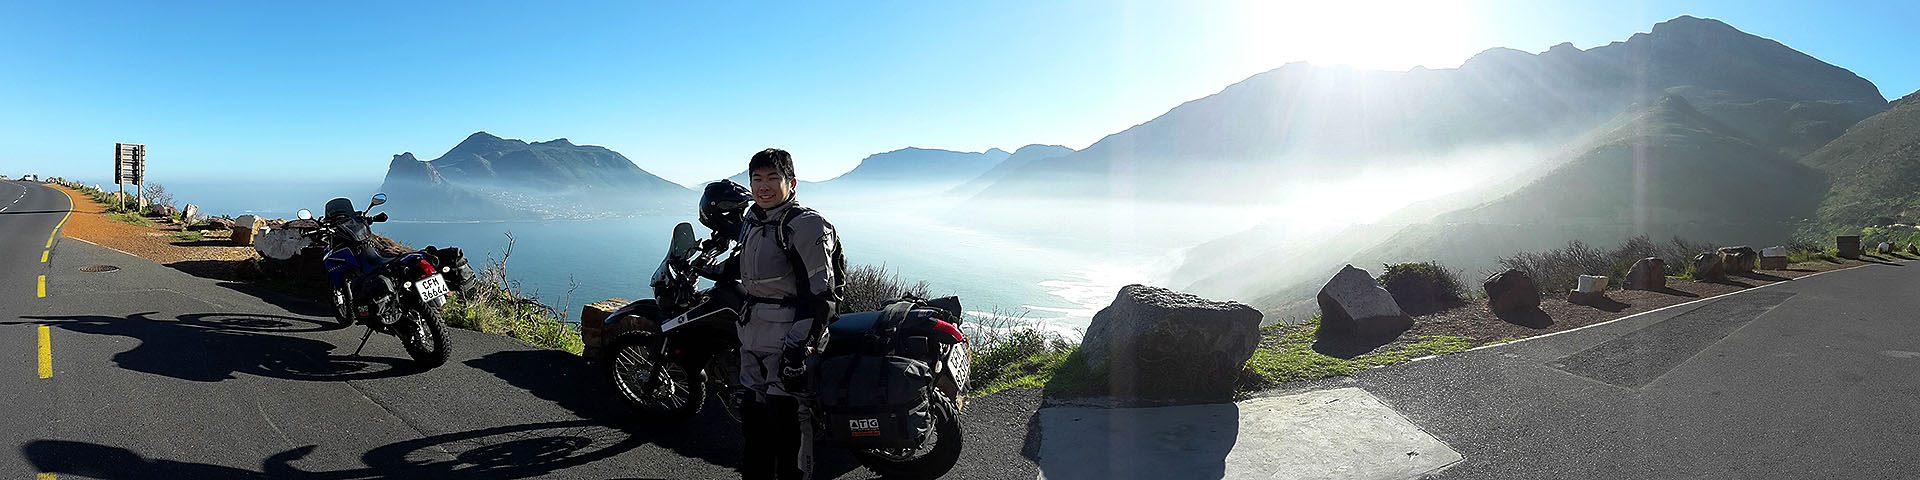 Chapmans Peak and Hout Bay